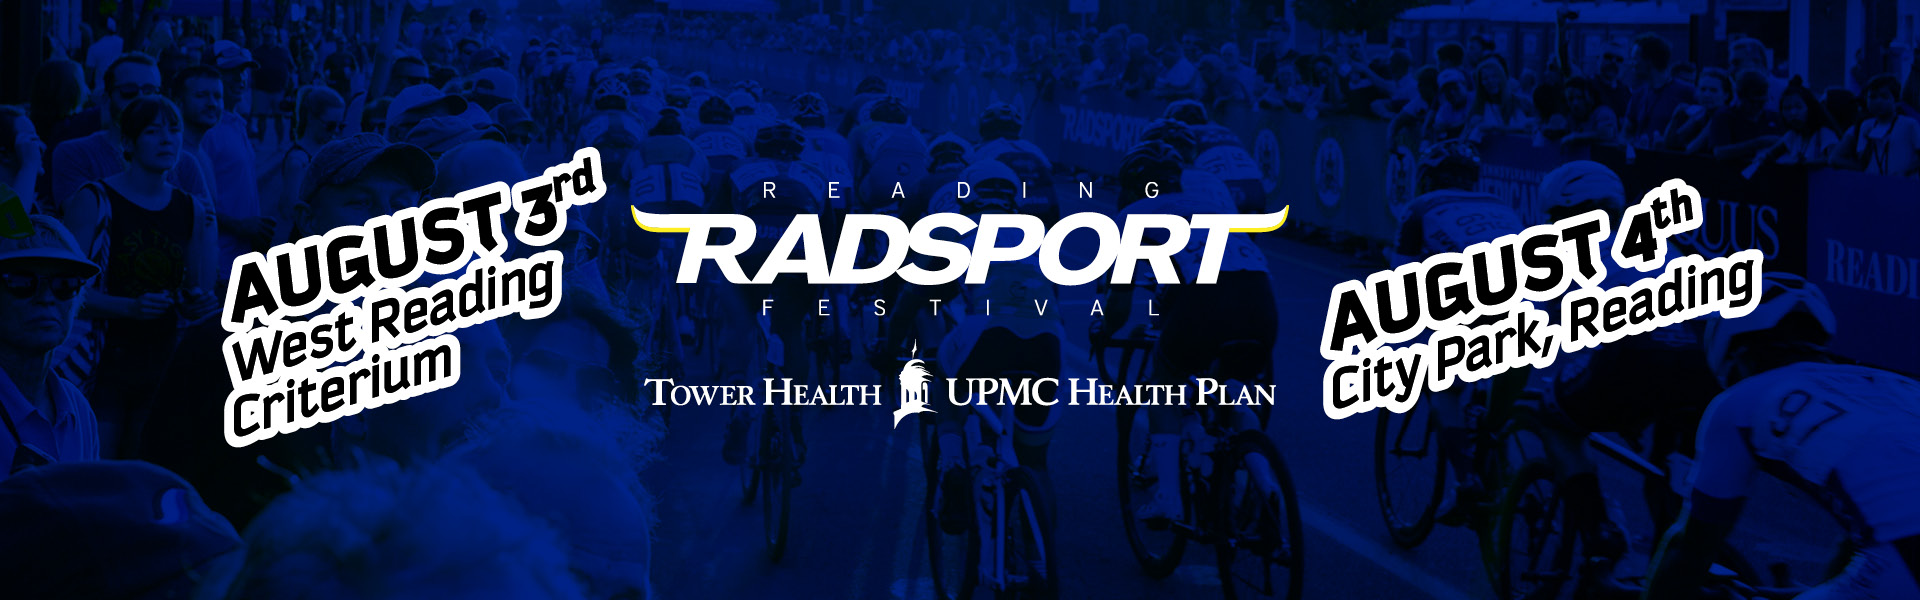 Advertisment for the Reading Radsport Bike Festival which takes place on August 3rd & 4th 2019